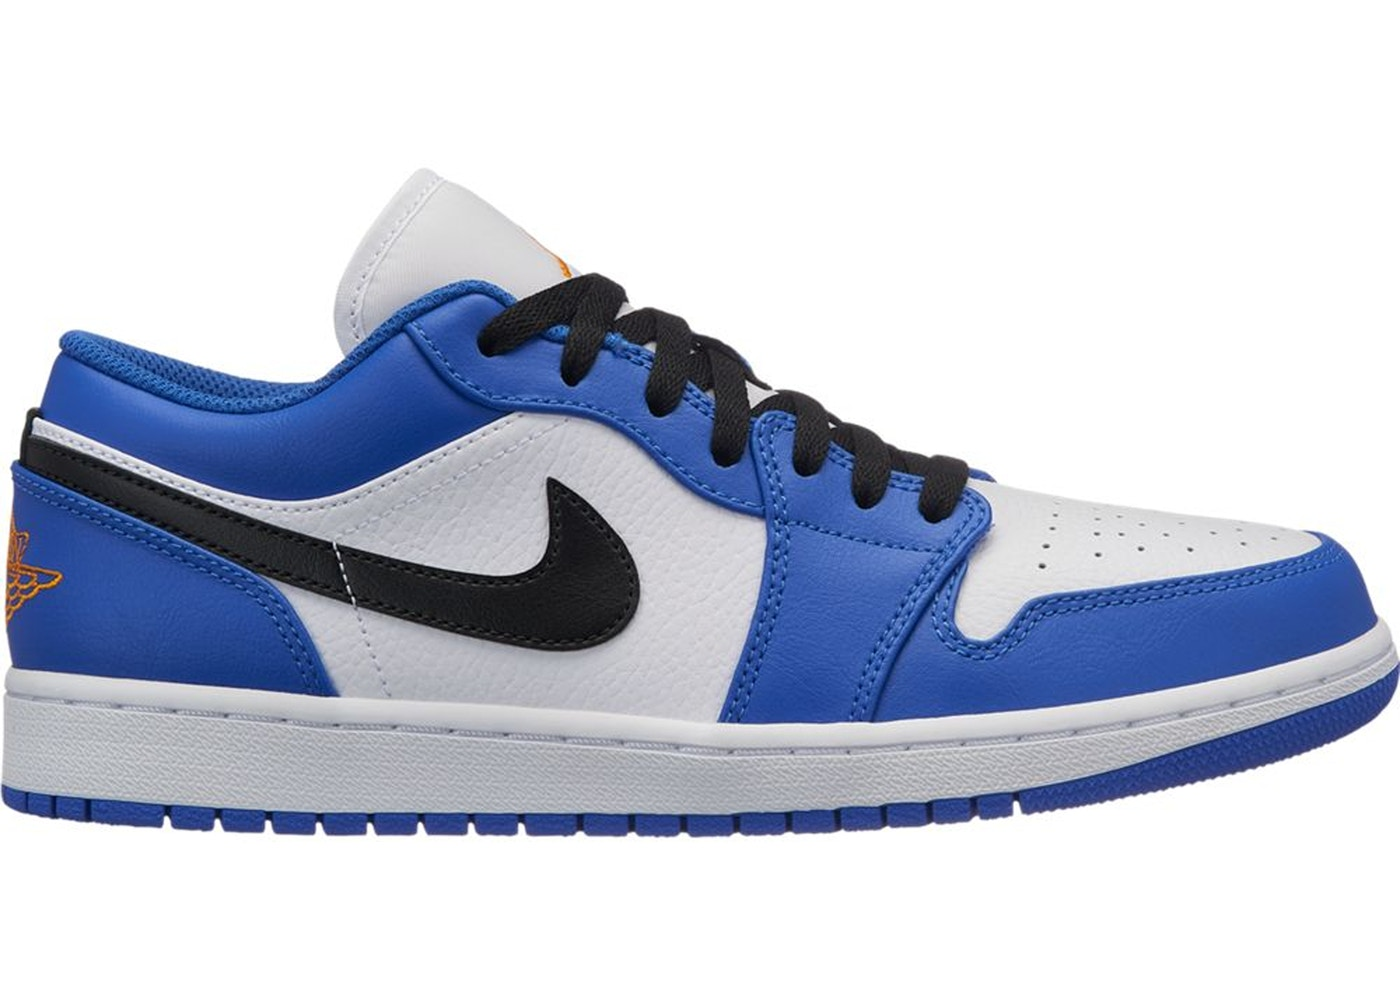 650186dc0f17cc Jordan 1 Low Hyper Royal Orange Peel - 553558-401